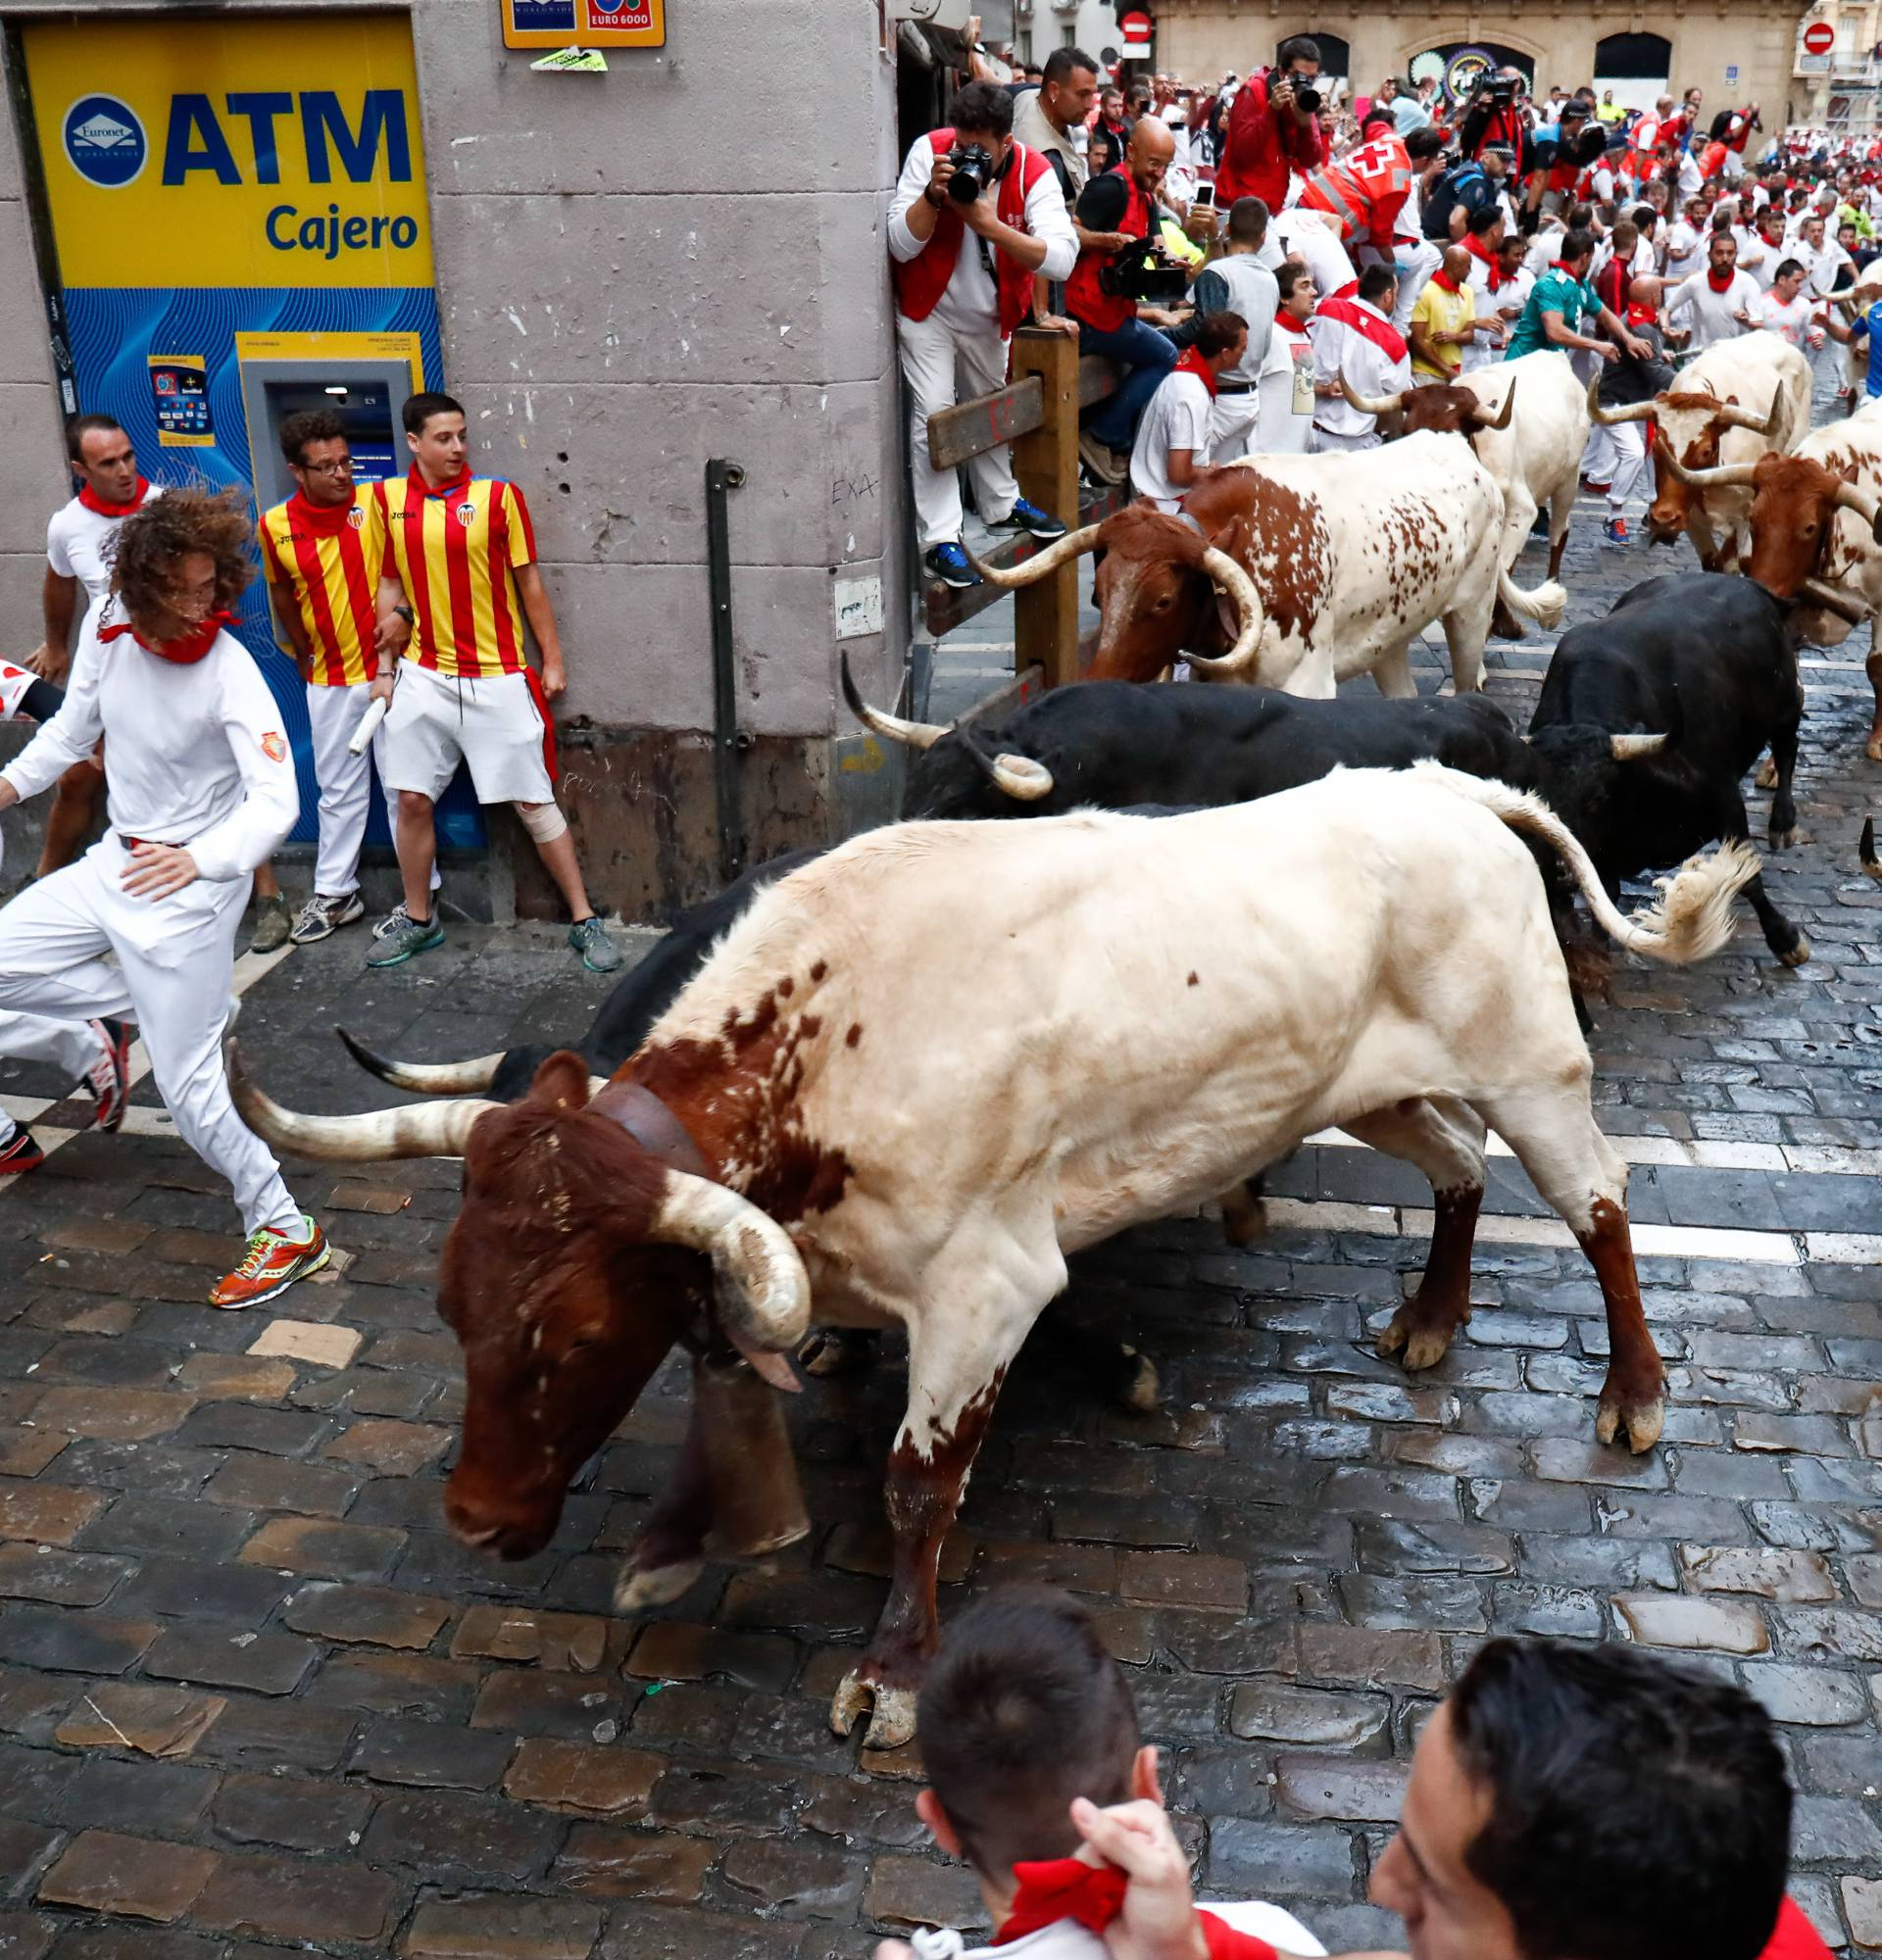 Participants run next to Vitoriano del Rio fighting bulls on Estafeta street on the fourth bullrun of the San Fermin festival in Pamplona, northern Spain on July 12, 2018